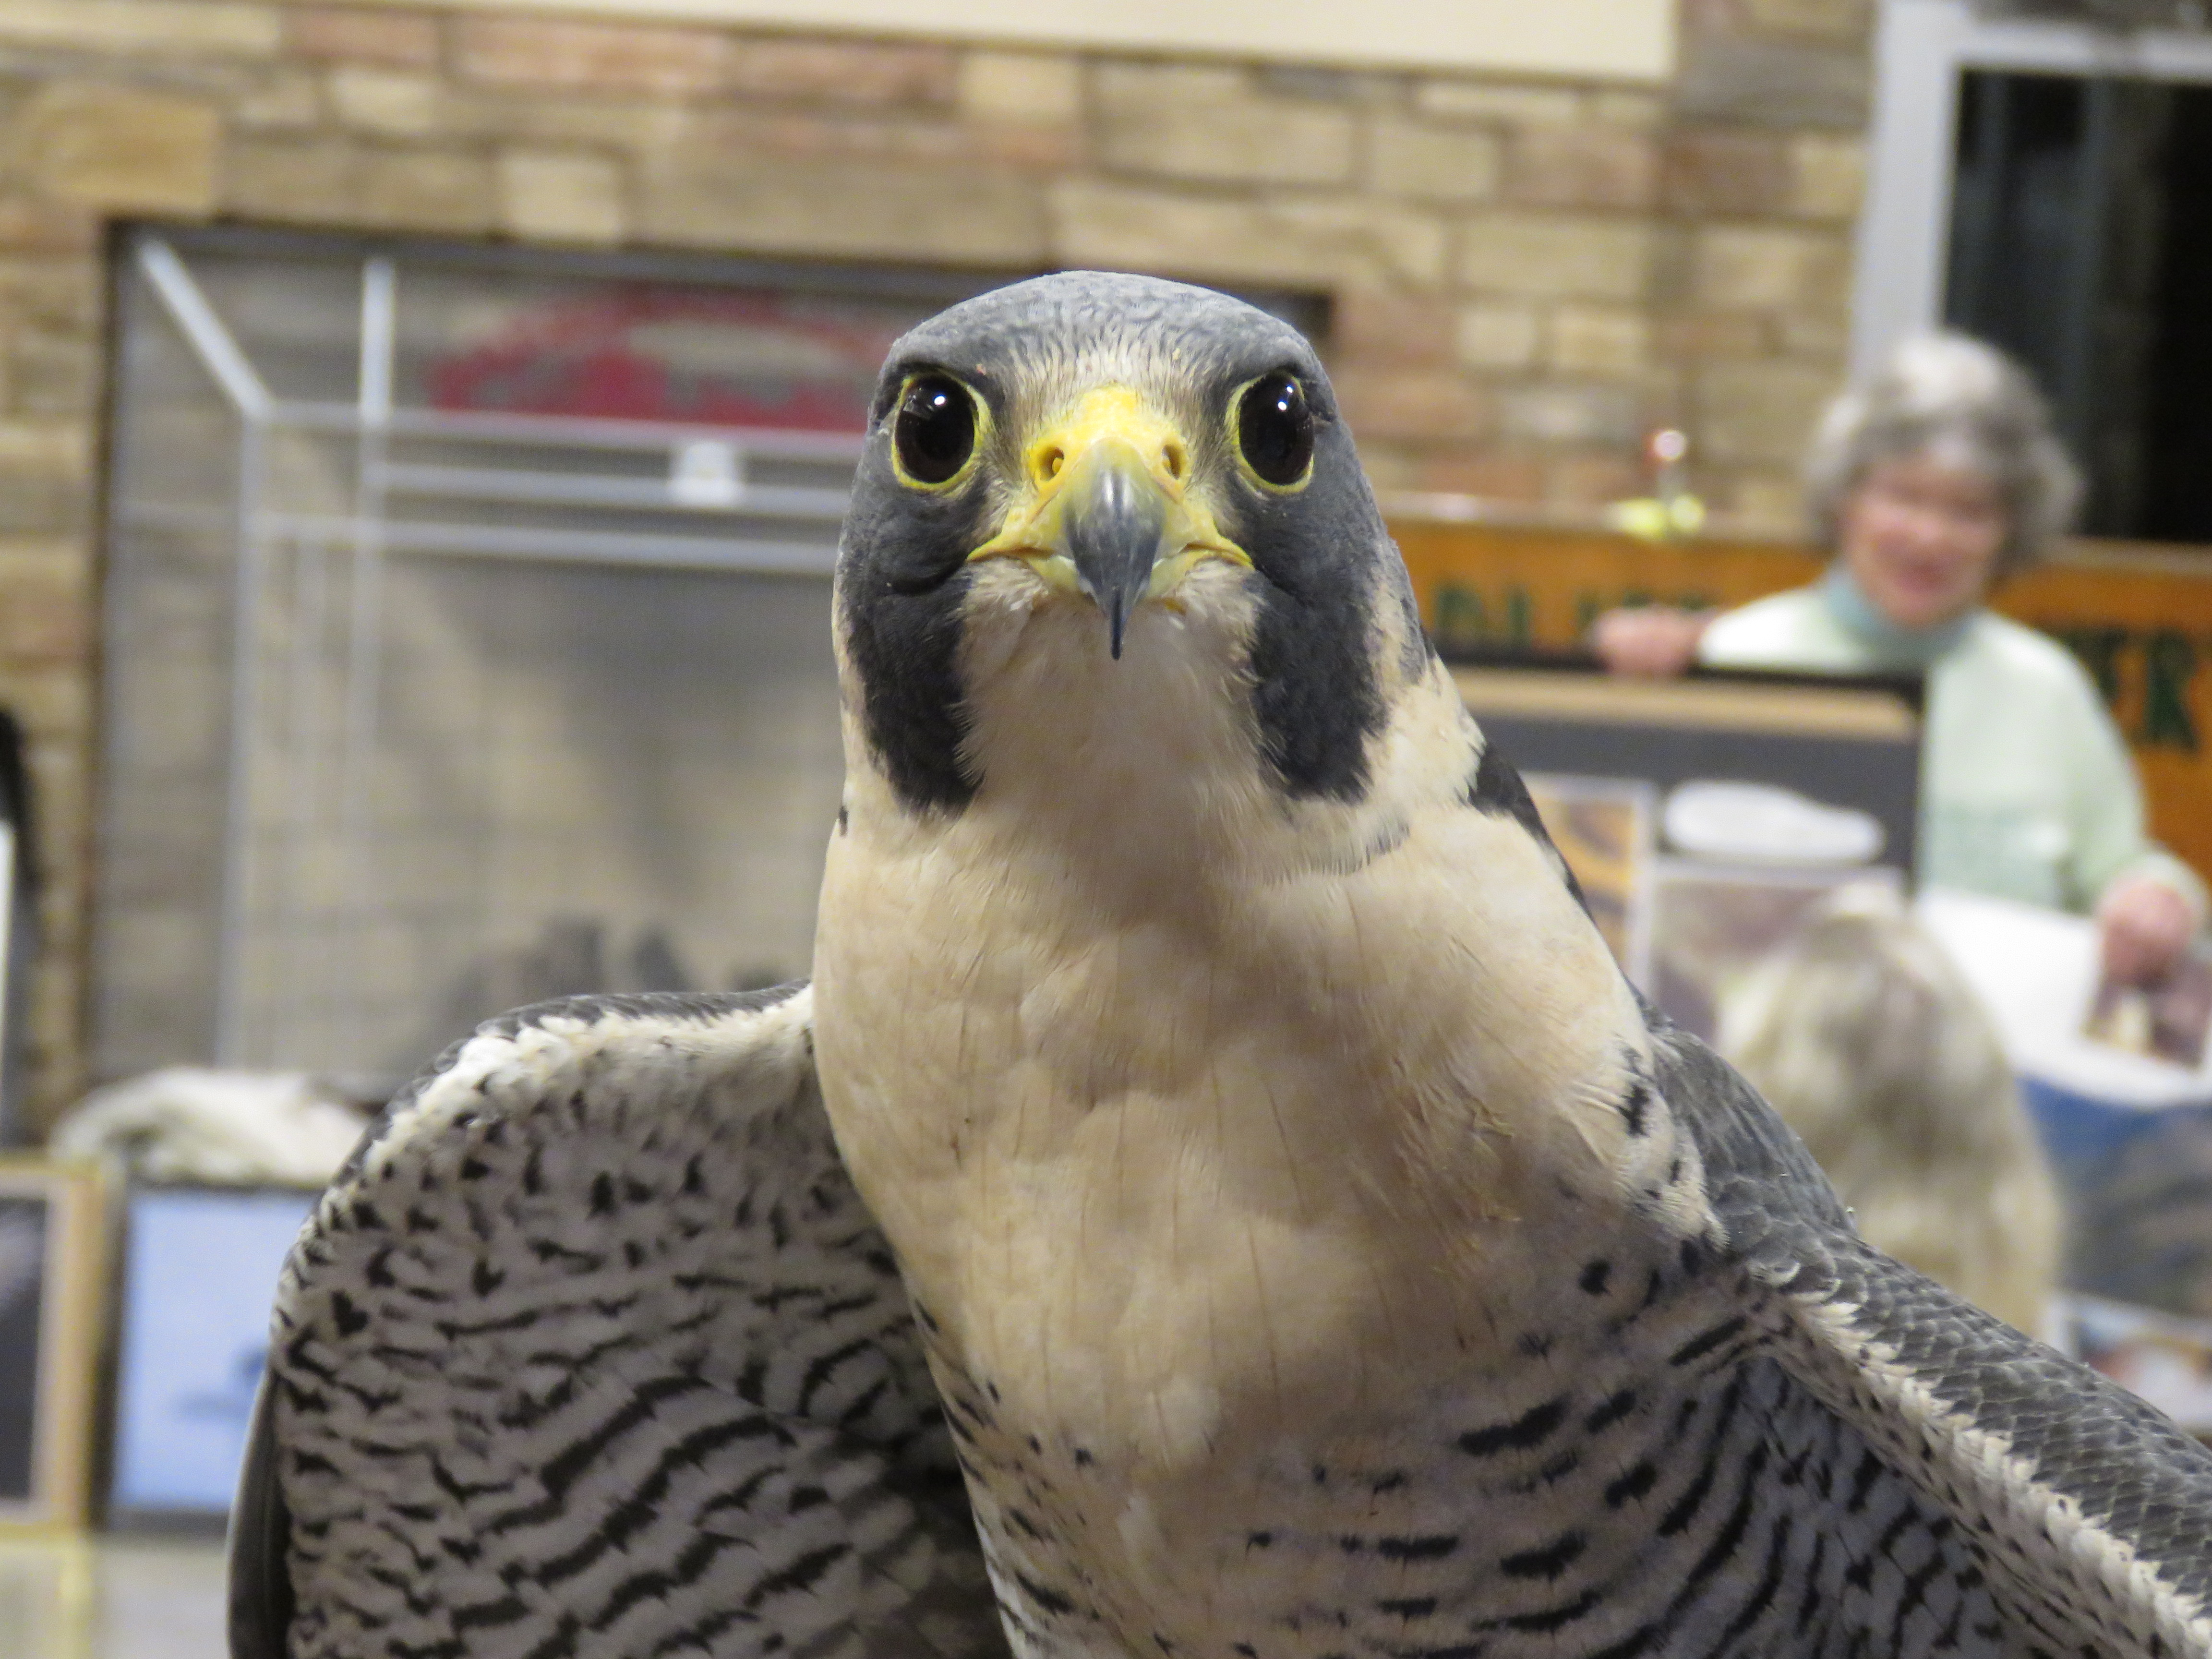 A close-up photograph of a peregrine falcon taken indoors. The falcon is staring right at the camera.